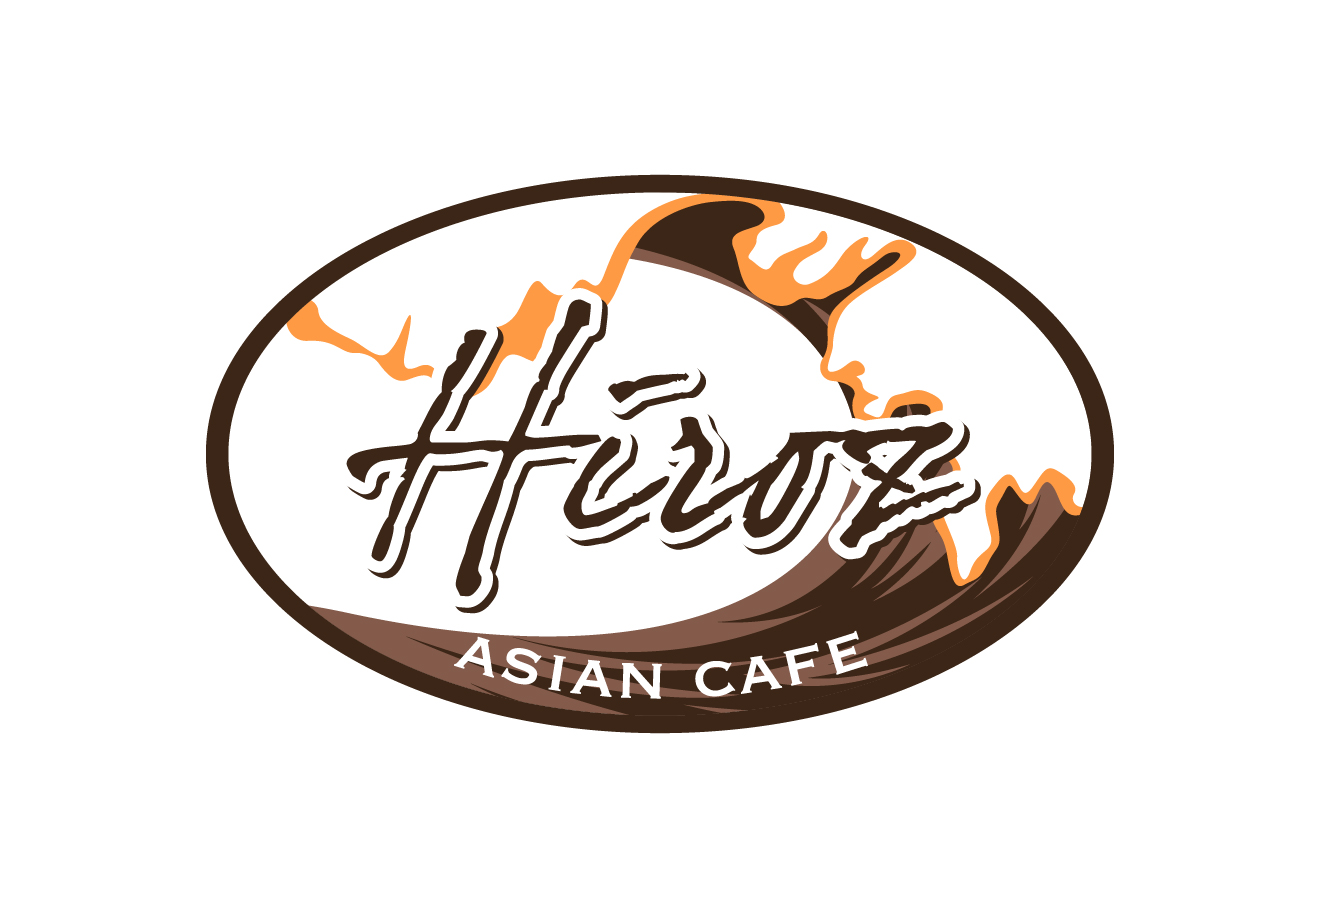 Asian Cafe Hiroz